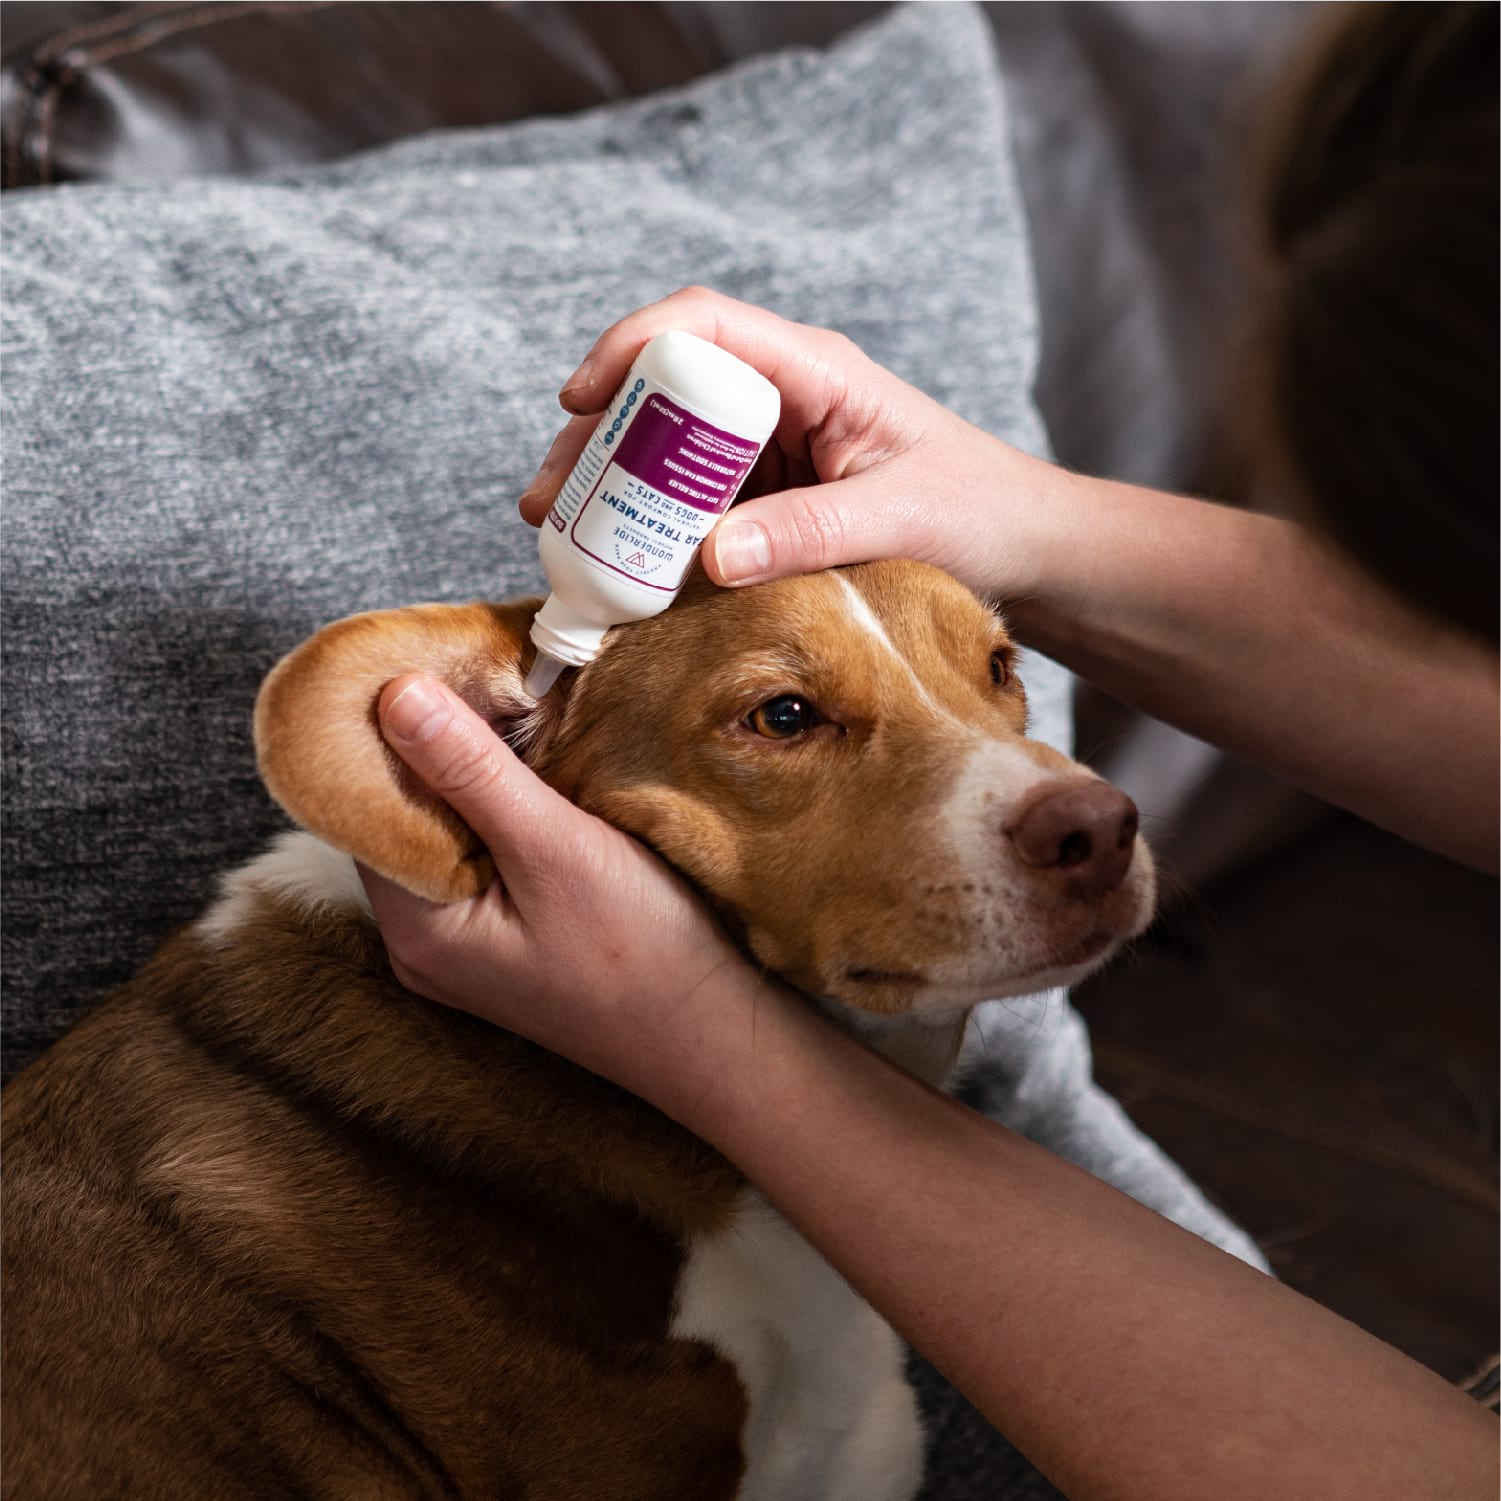 Ear Wash and Treatment Kit for Dogs and Cats - In Use